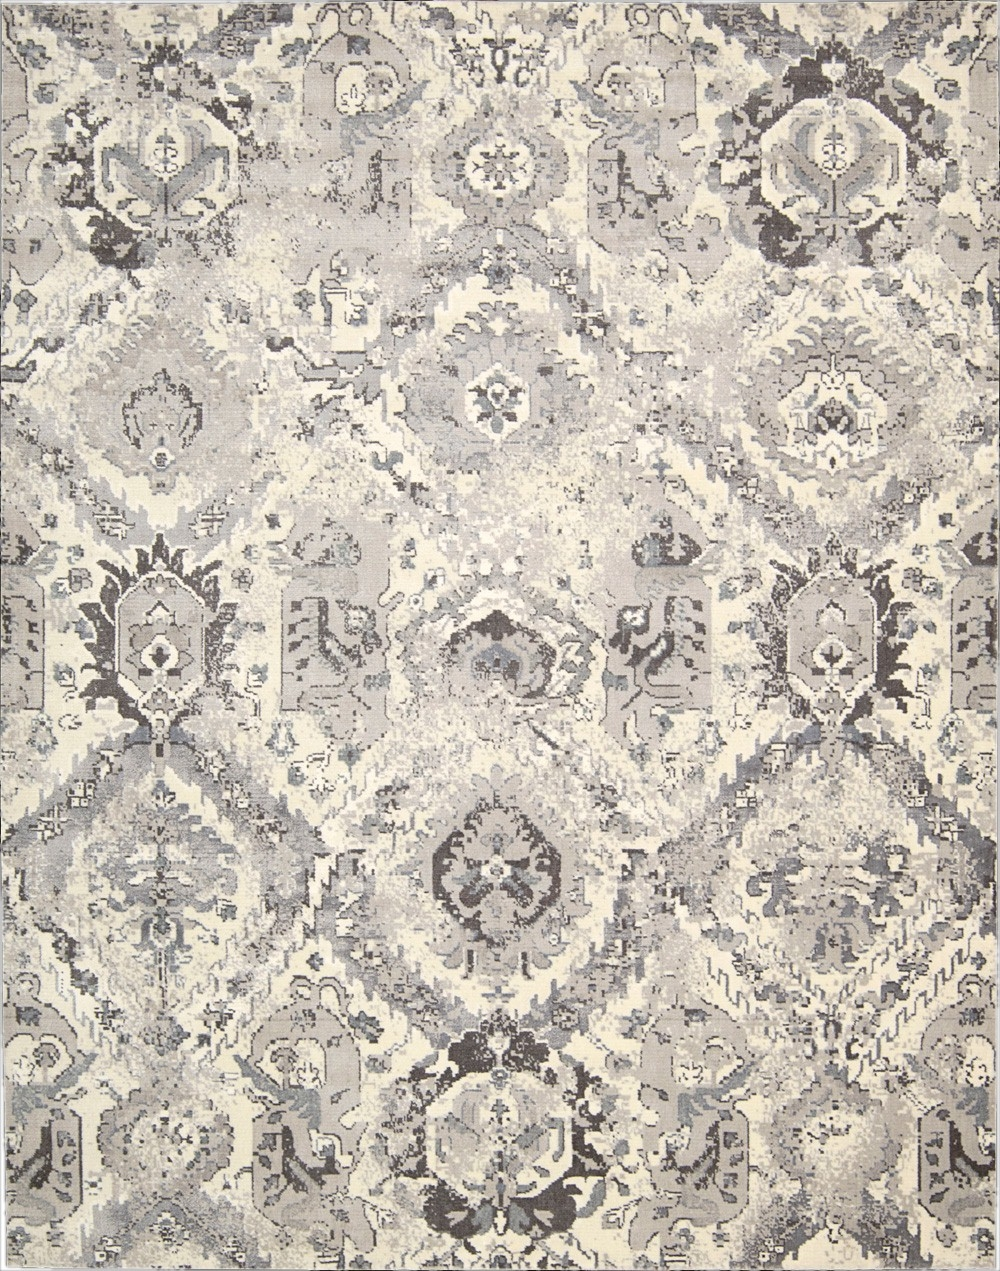 Nourison Twilight Twi03 Ivgry Ivorygrey Area Rug Rugs A Bound Regarding Nourison Carpets (Image 13 of 15)